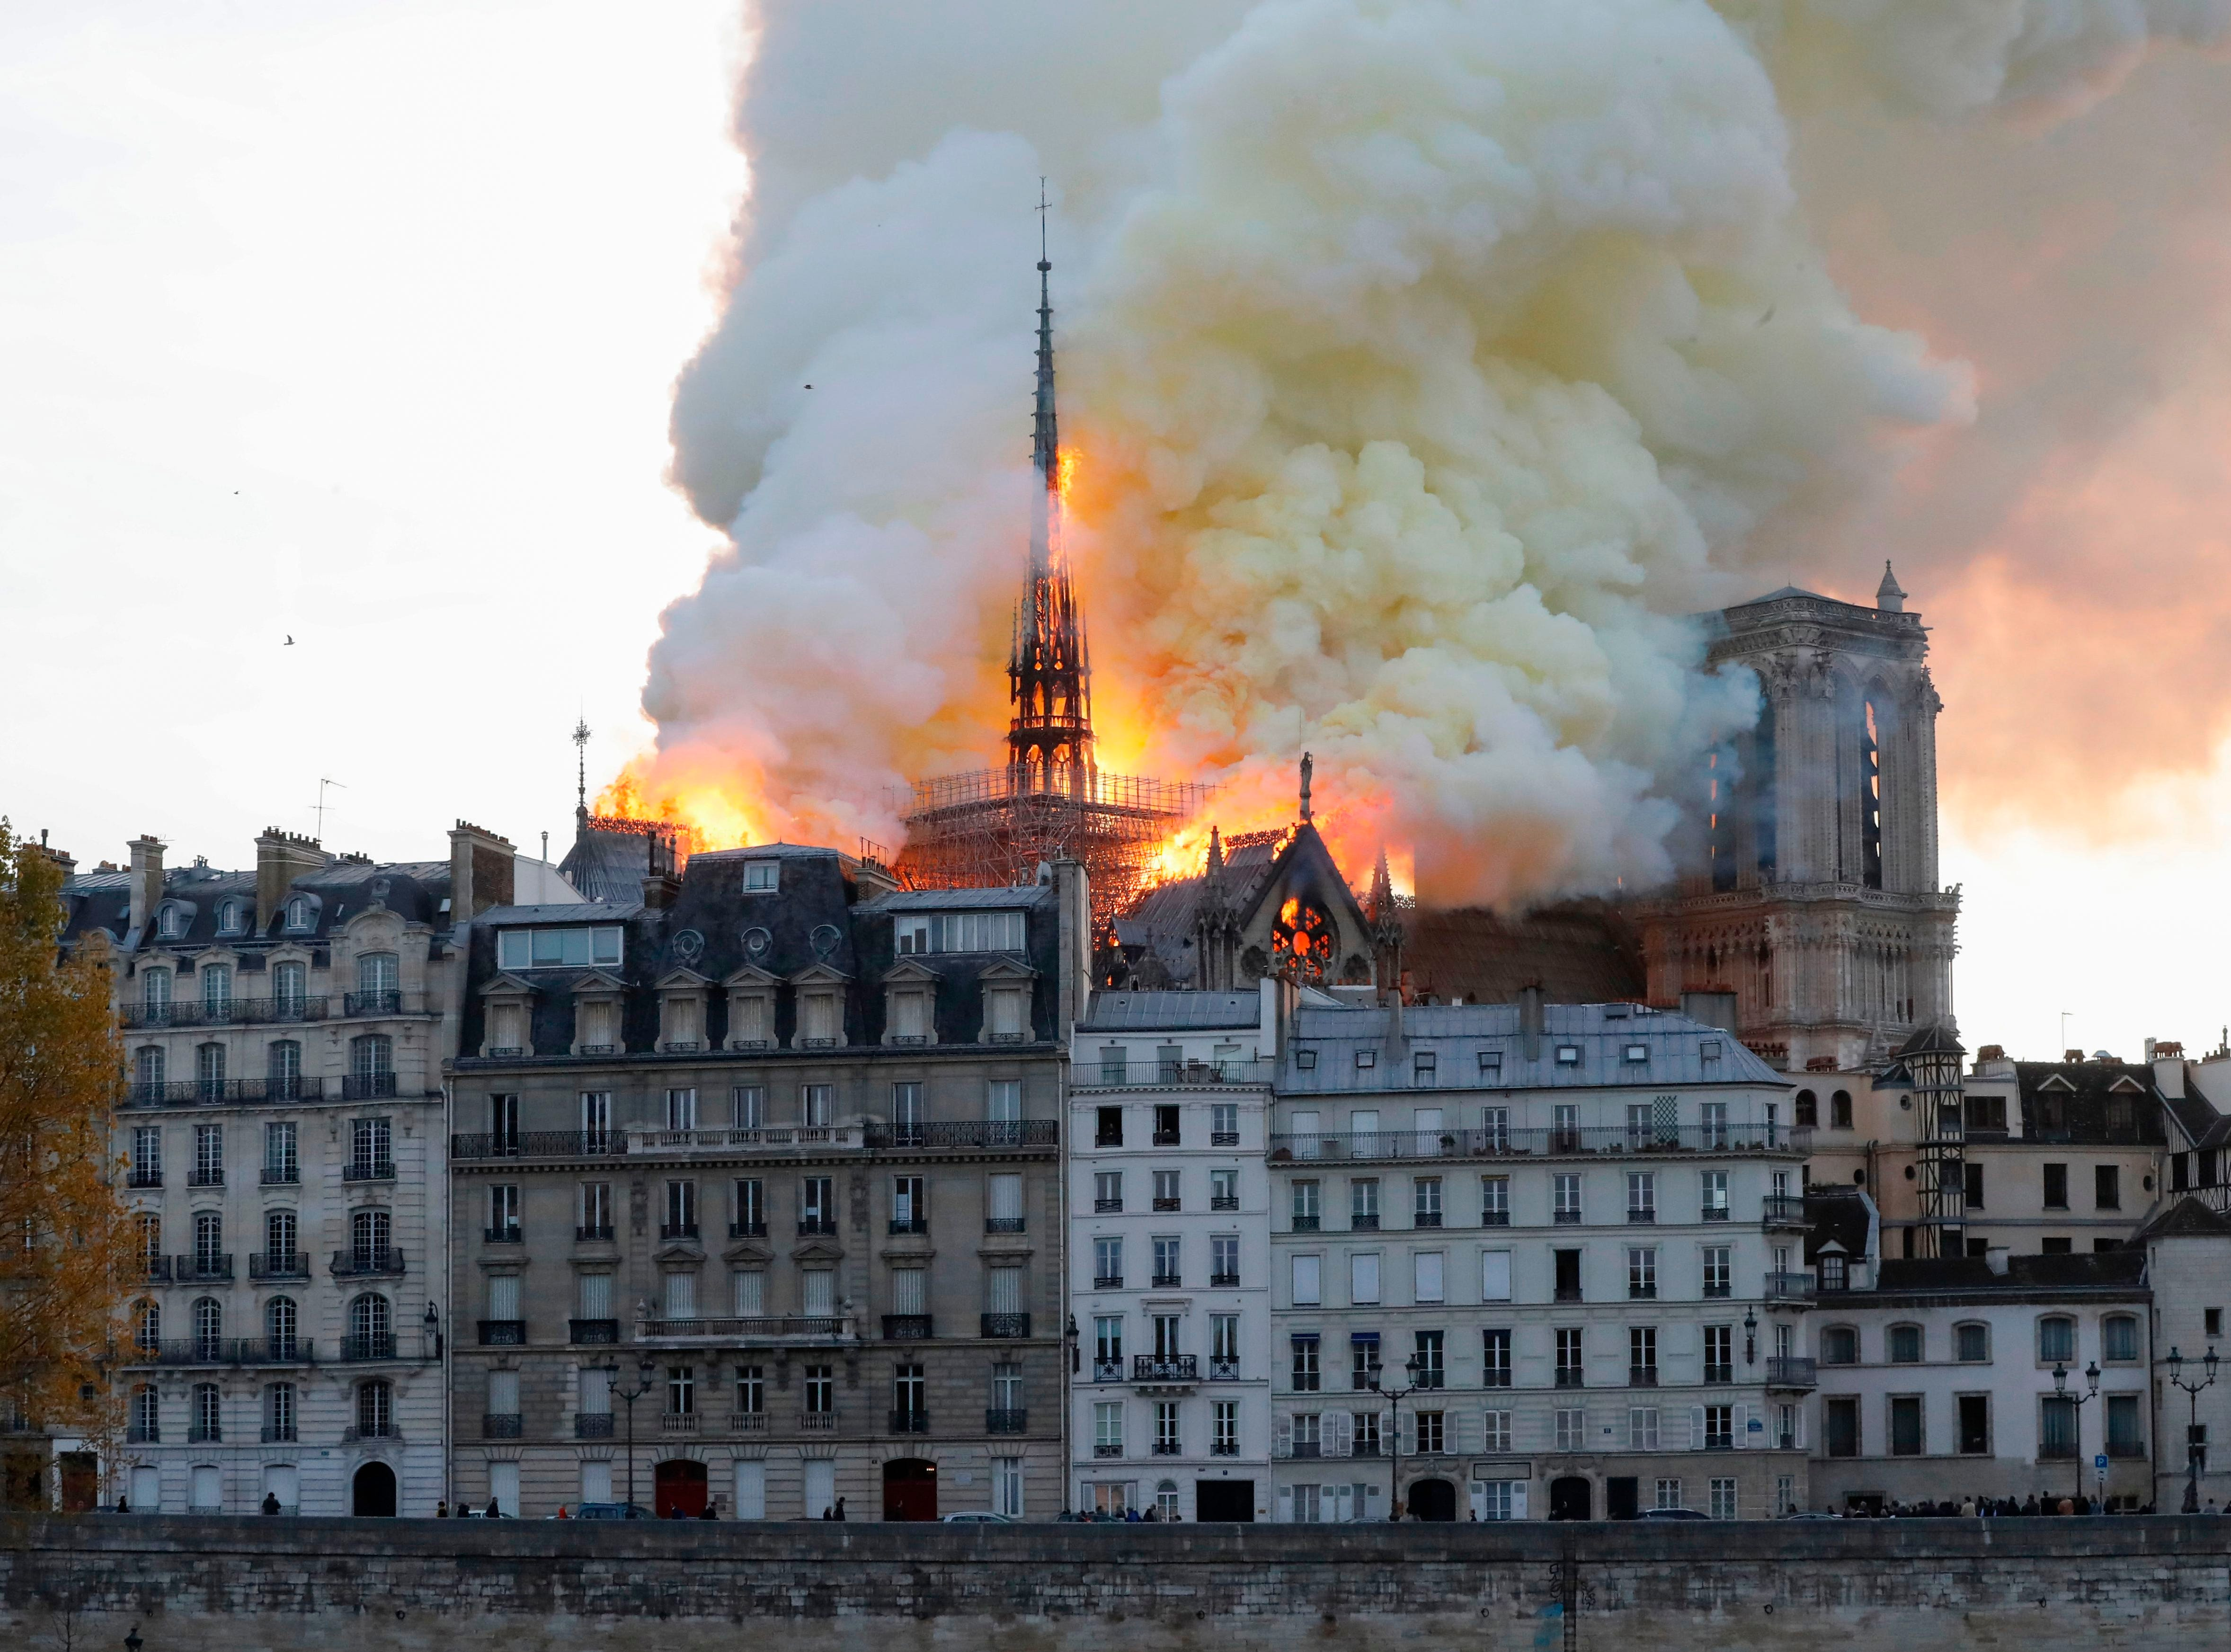 Seen from across the Seine River, smoke and flames rise during a fire at the landmark Notre-Dame Cathedral in central Paris on April 15, 2019, potentially involving renovation works being carried out at the site, the fire service said.